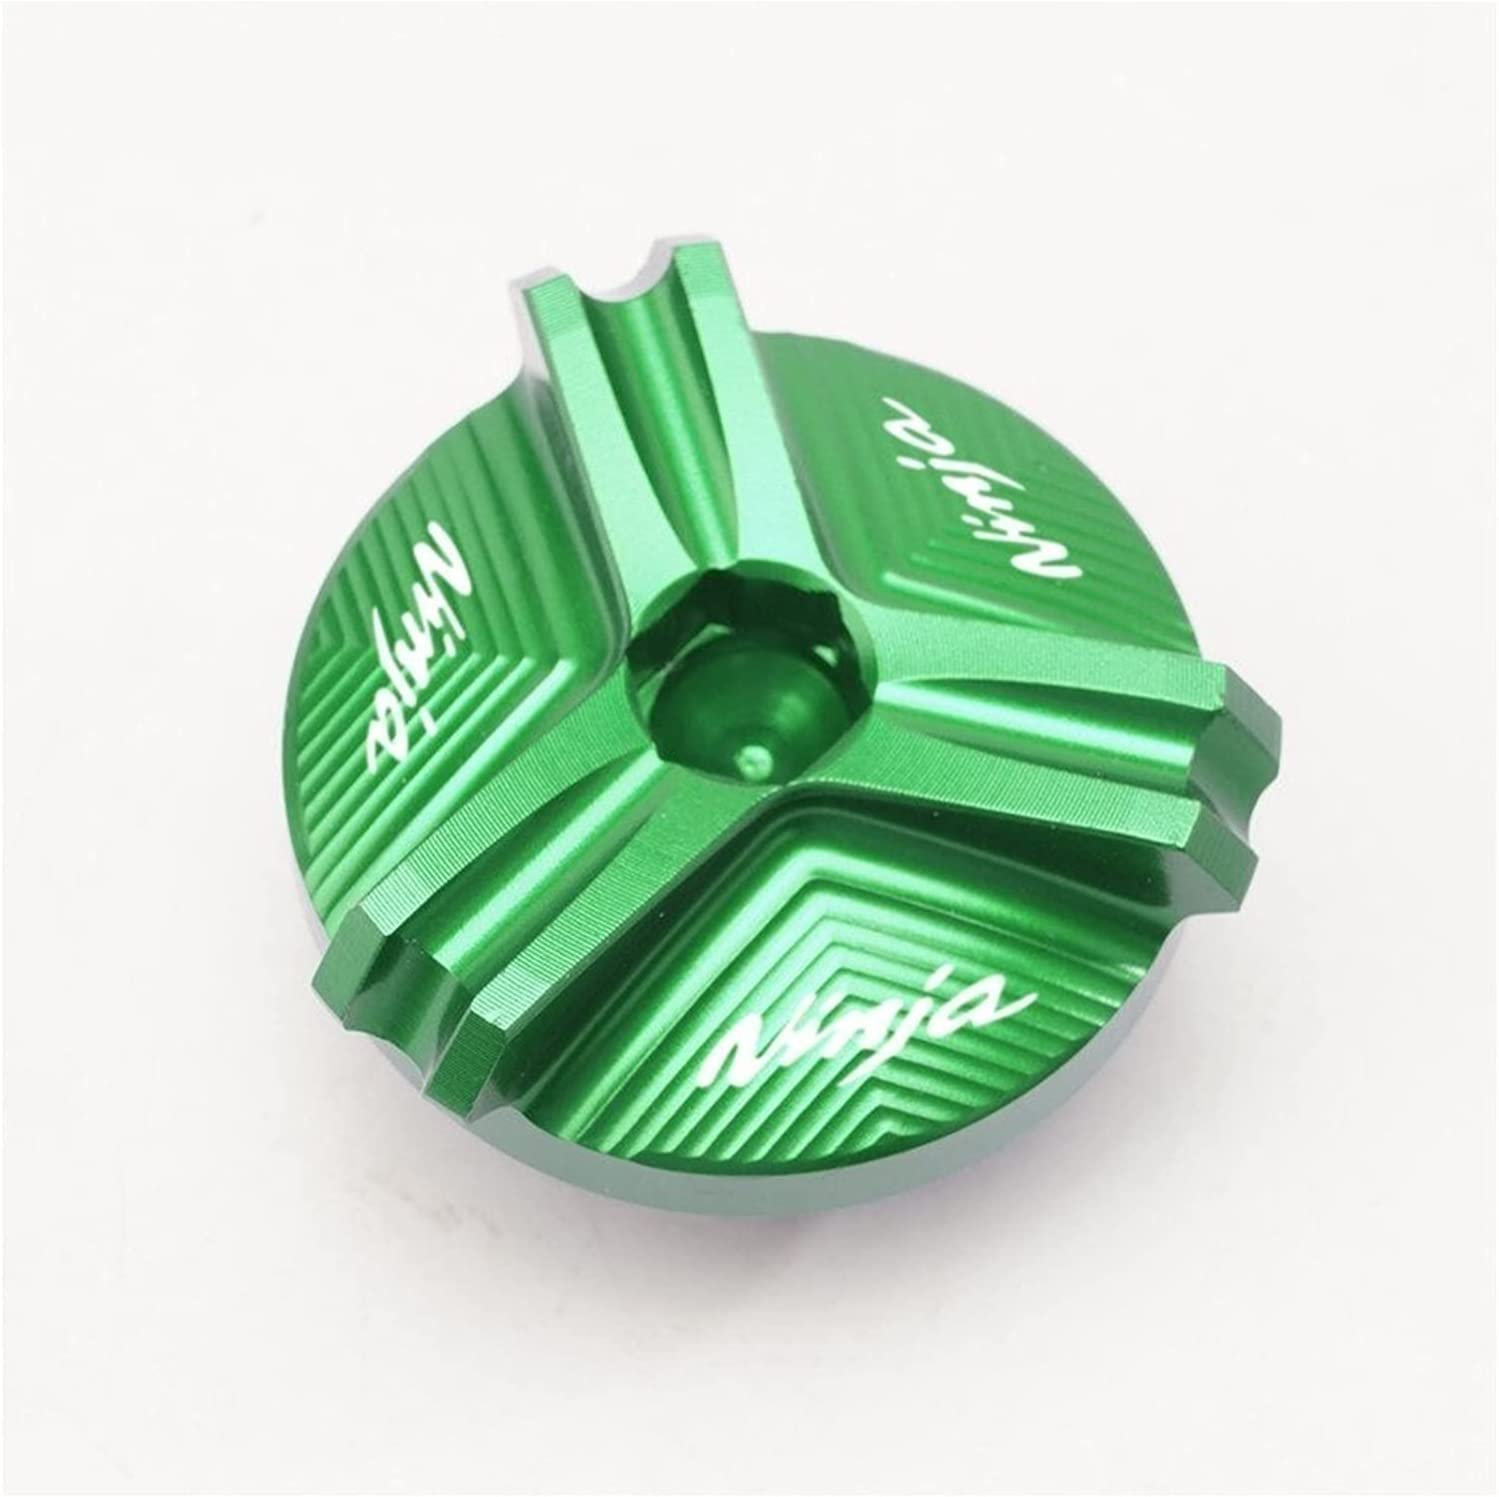 HDDTW Outlet ☆ Free Shipping Pro Taper Decorative Gas Caps Kawasaki KLF185 KLF110 Genuine for S